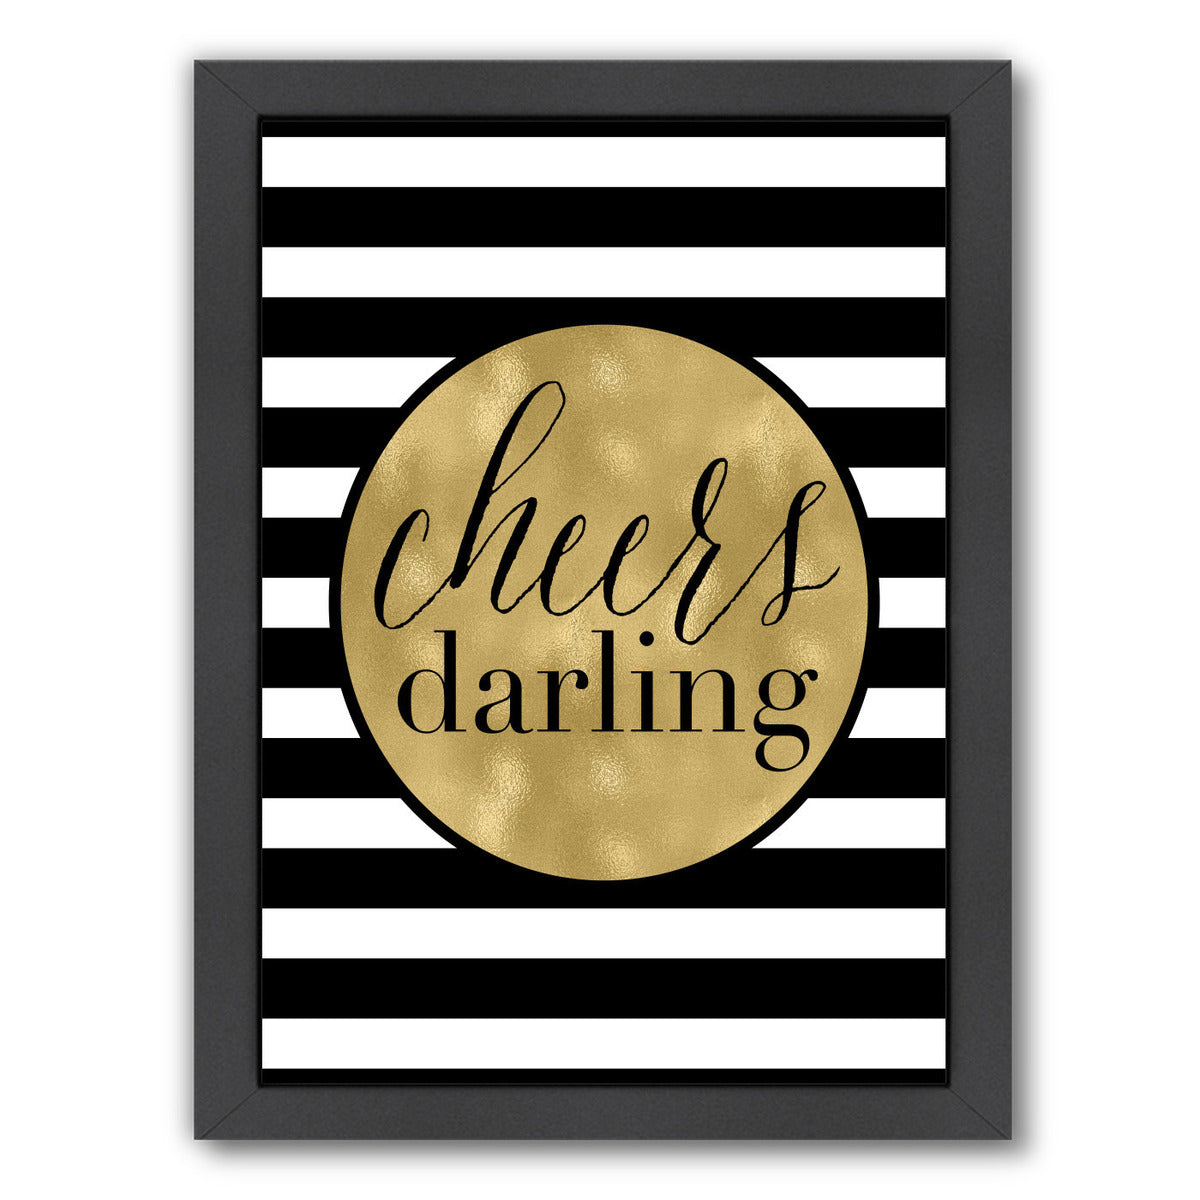 Cheers Darling White Stripe by Amy Brinkman Framed Print - Wall Art - Americanflat